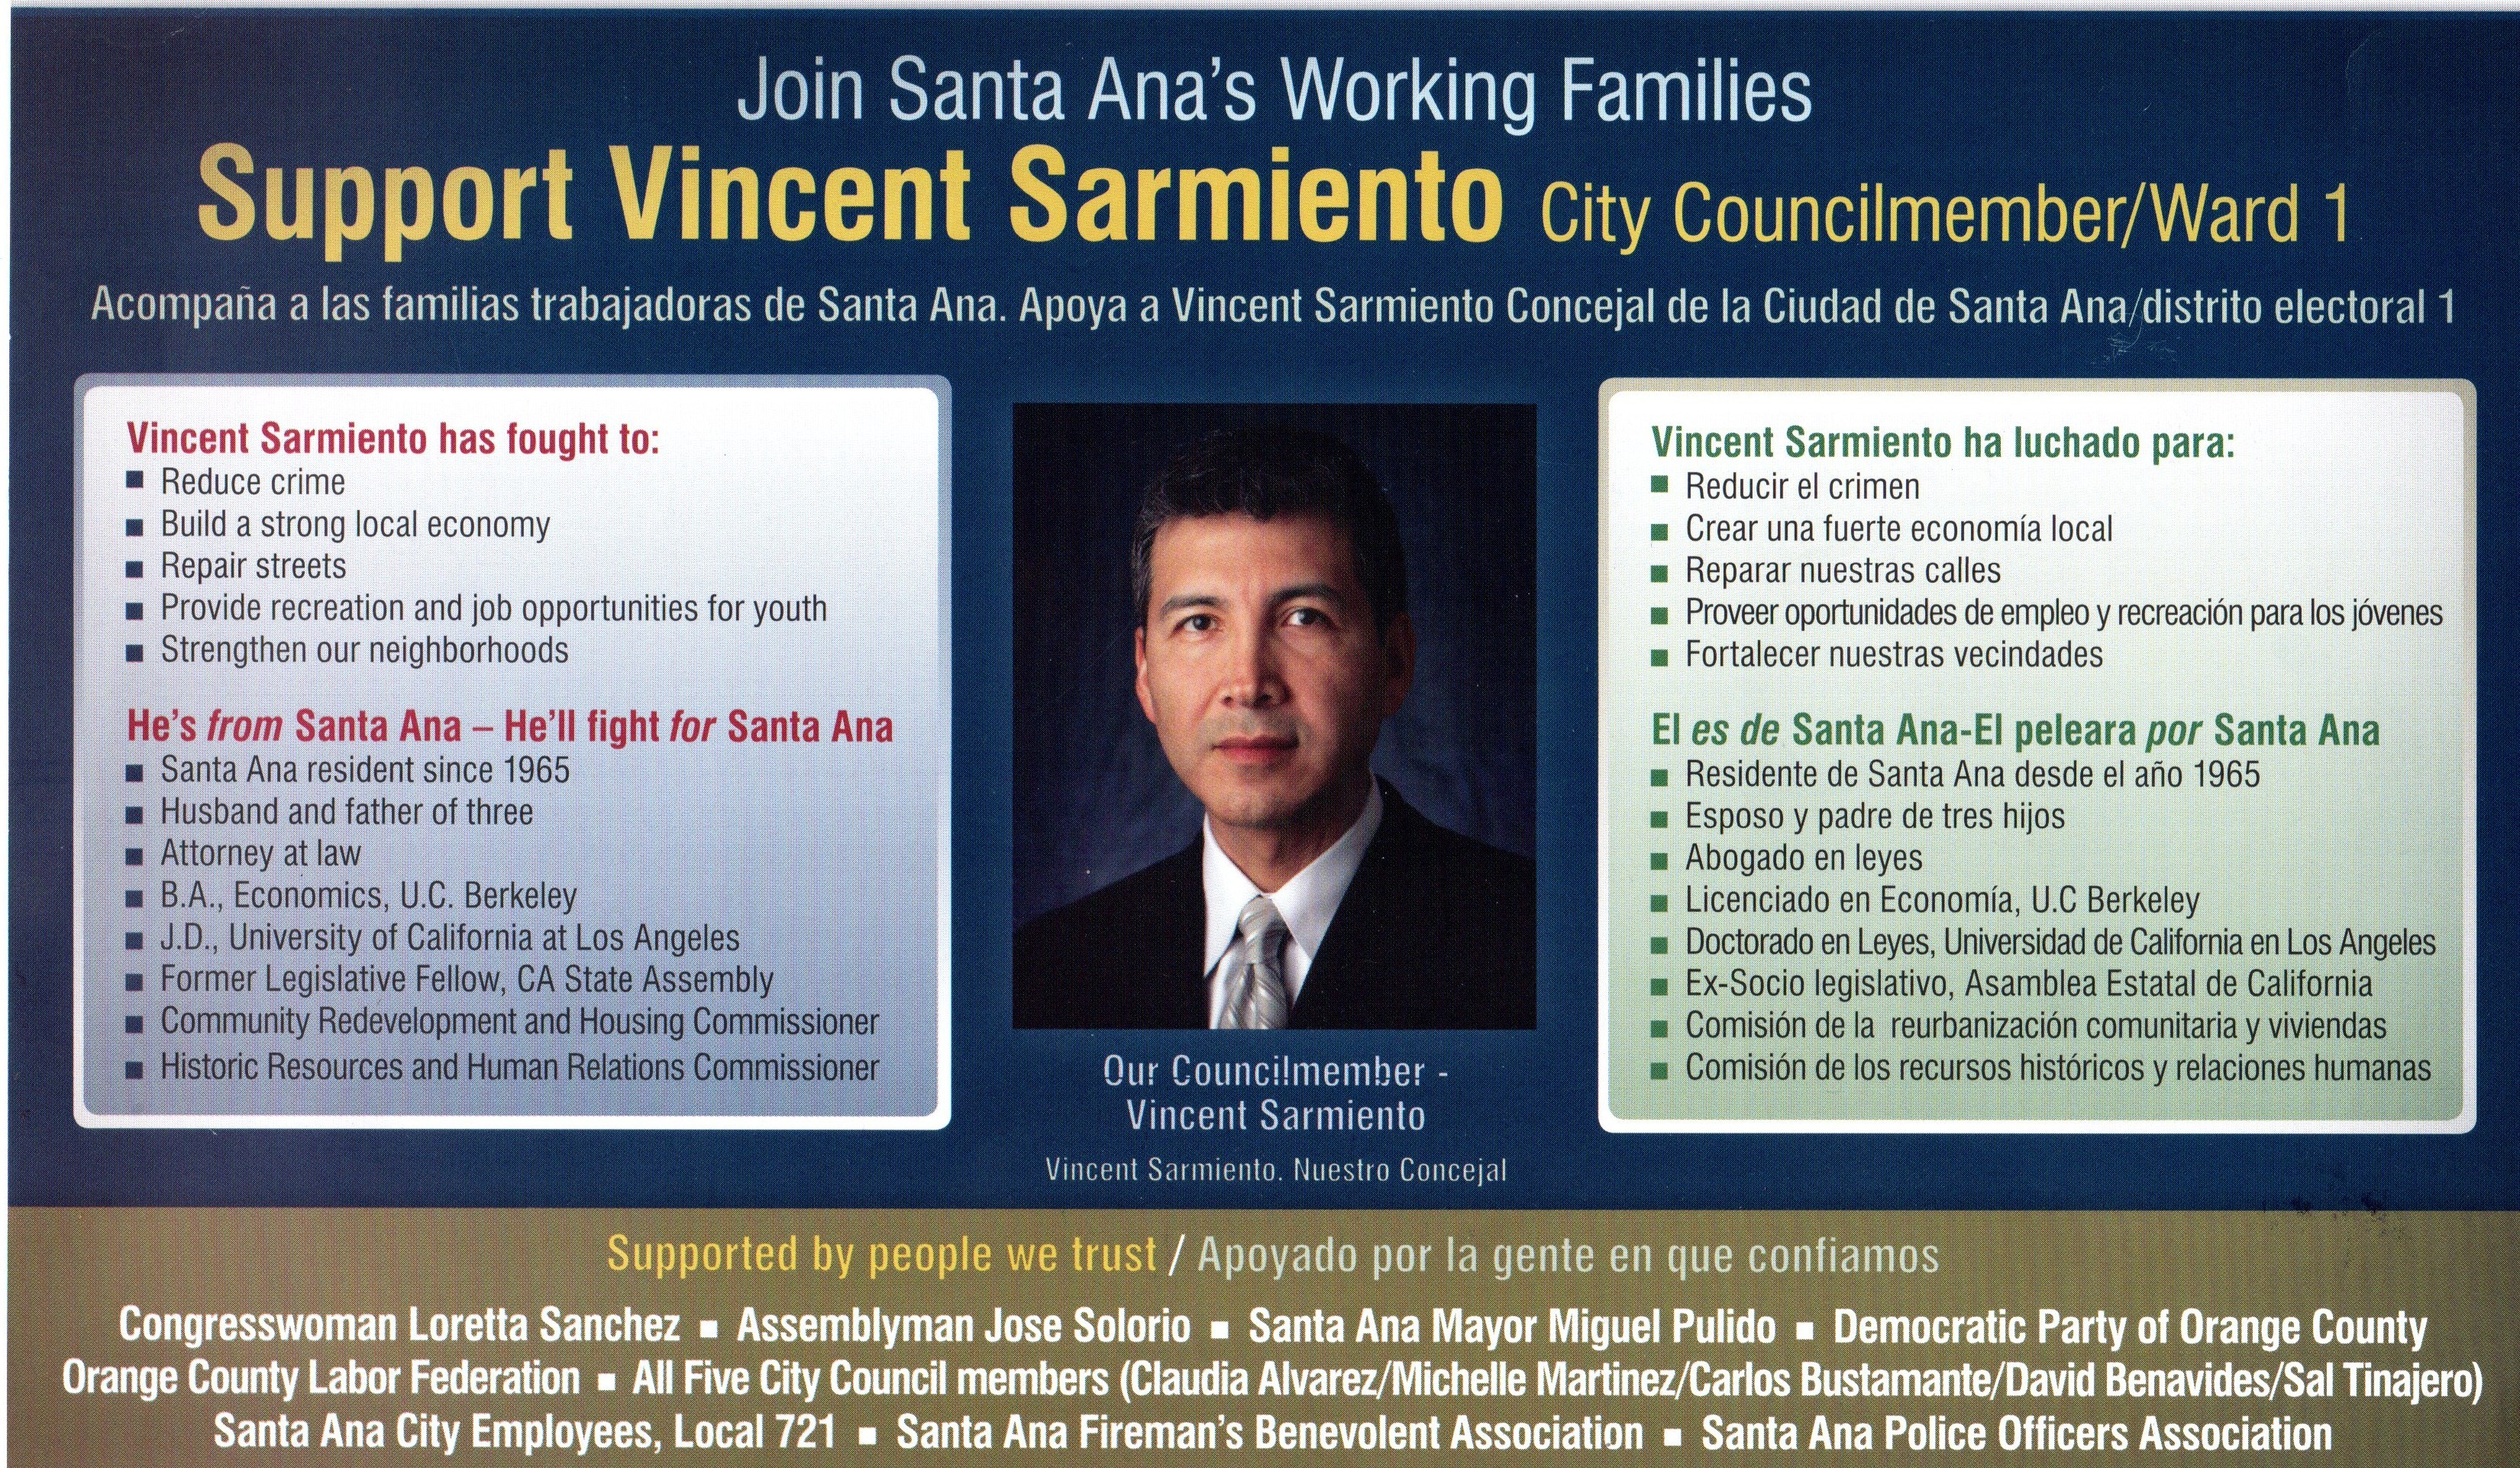 Santa Ana Councilman Vince Sarmiento looks nervous, according to those who have run into him of late. Apparently the SEIU conducted a poll last week that showed him only 9 […]